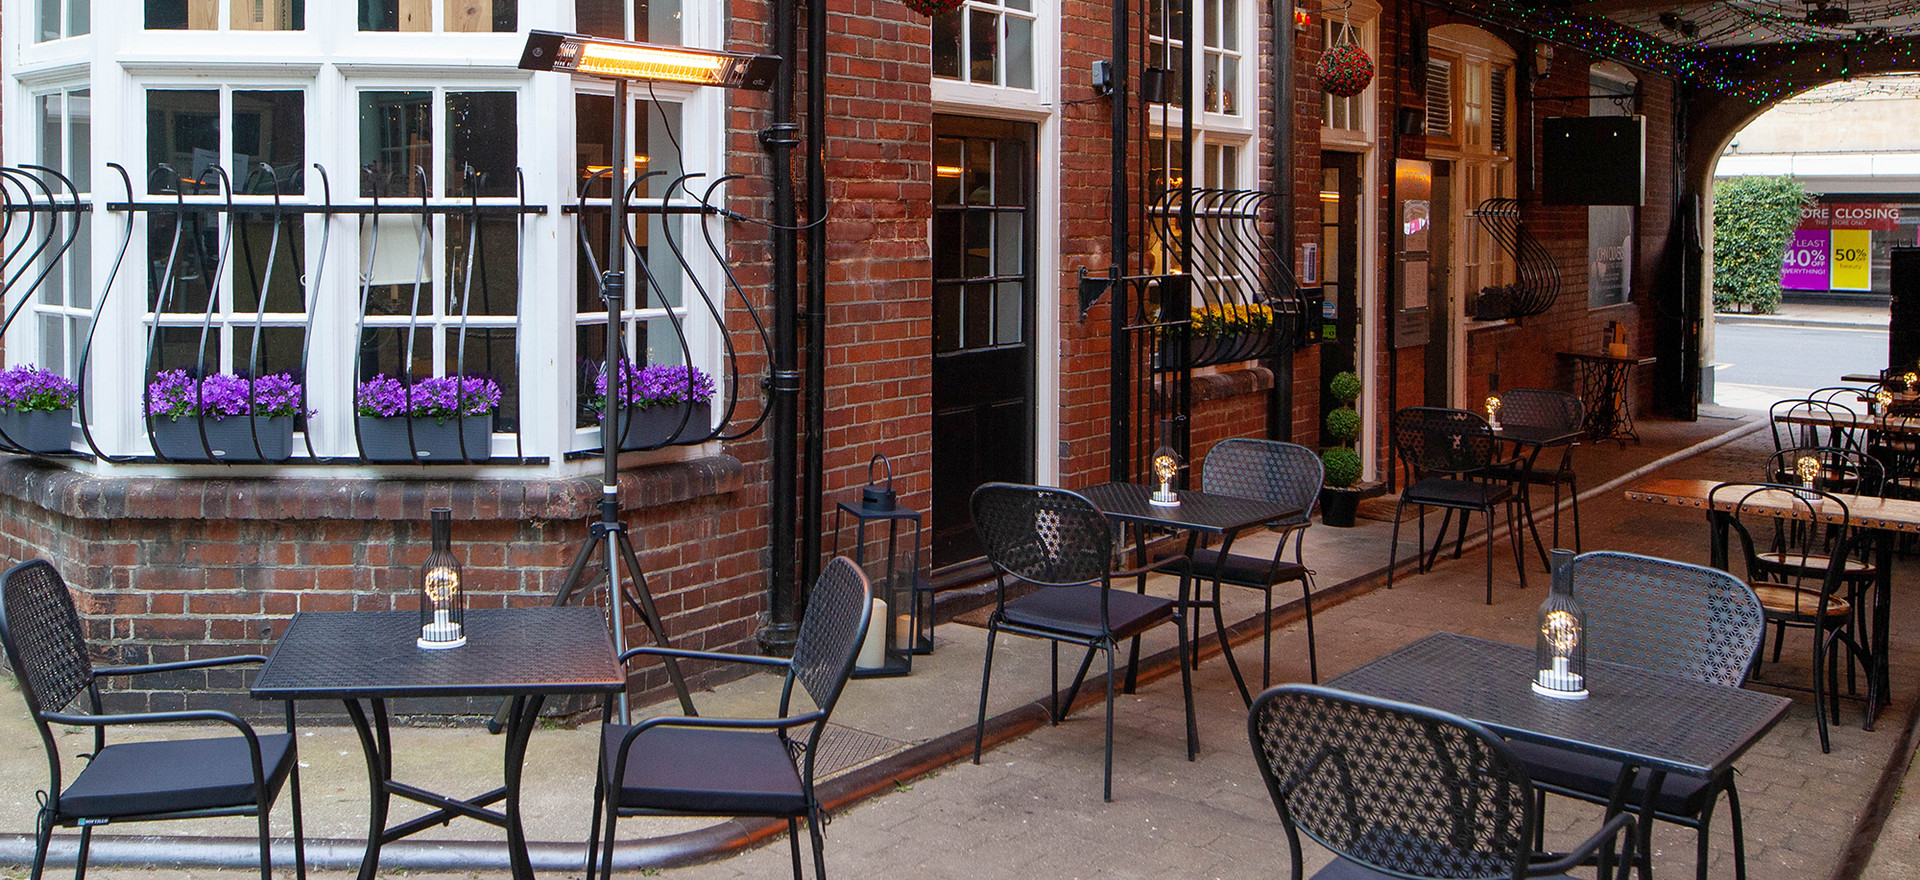 Jorges with outdoor seating near me- 2 1